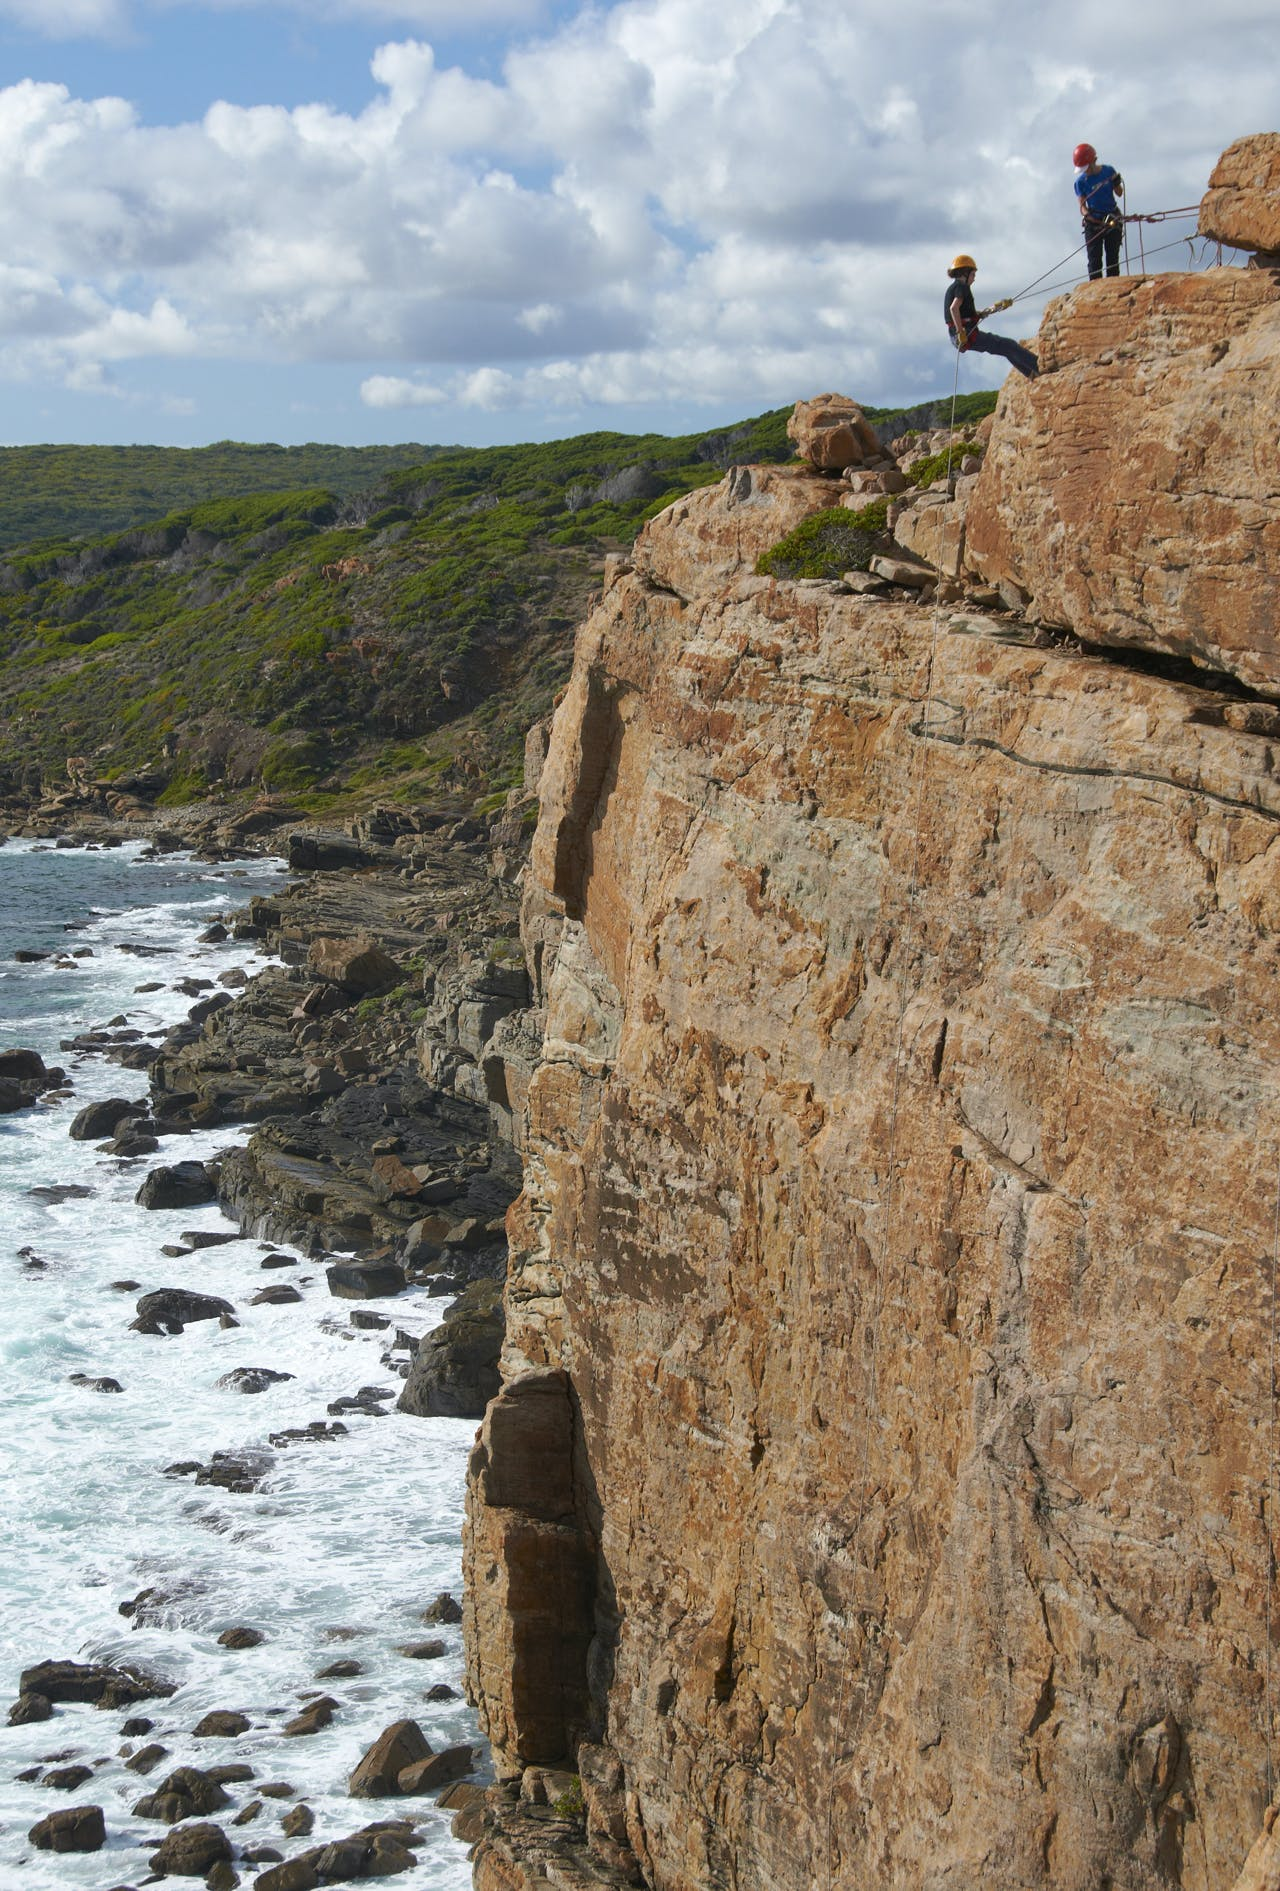 Abseilers on Wilyabrup Sea Cliffs, day 5 on C2C. Photo: Melanie Ball